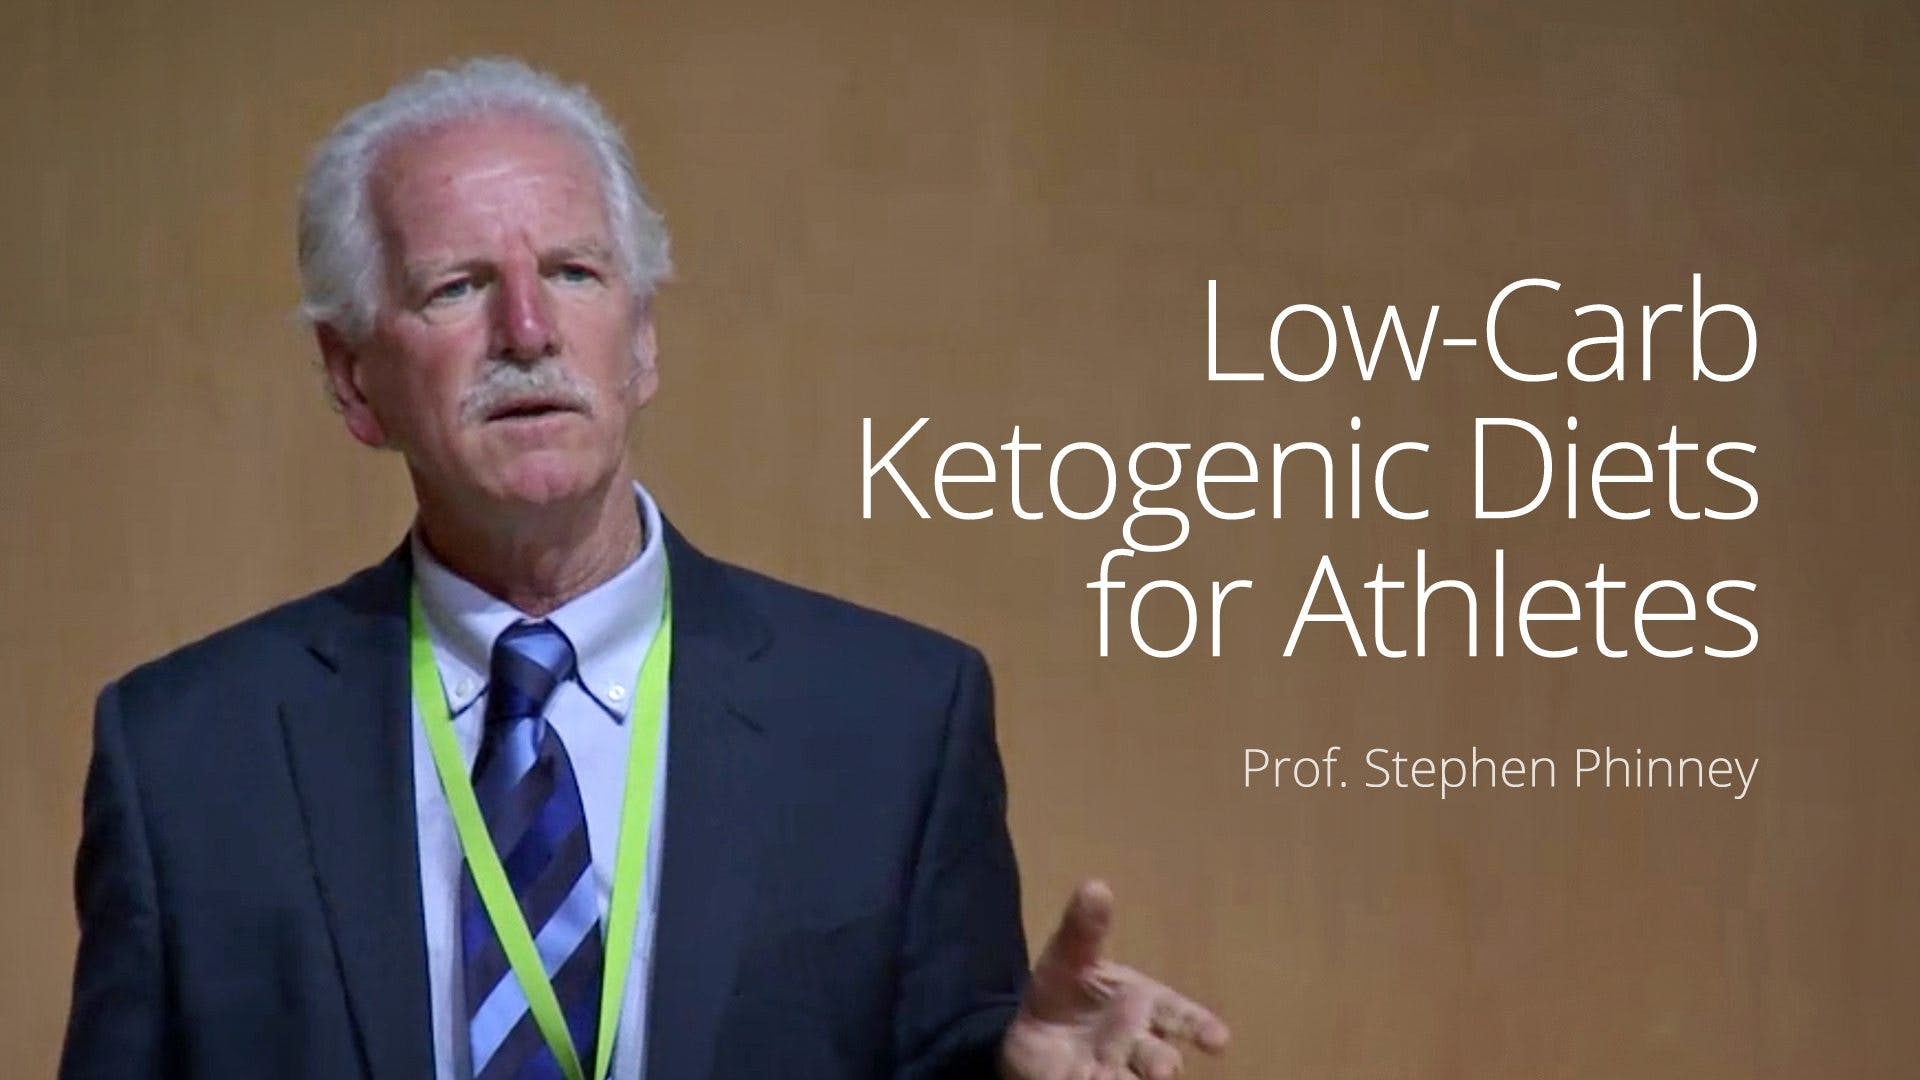 Low-Carb Ketogenic Diets for Athletes – Dr. Stephen Phinney